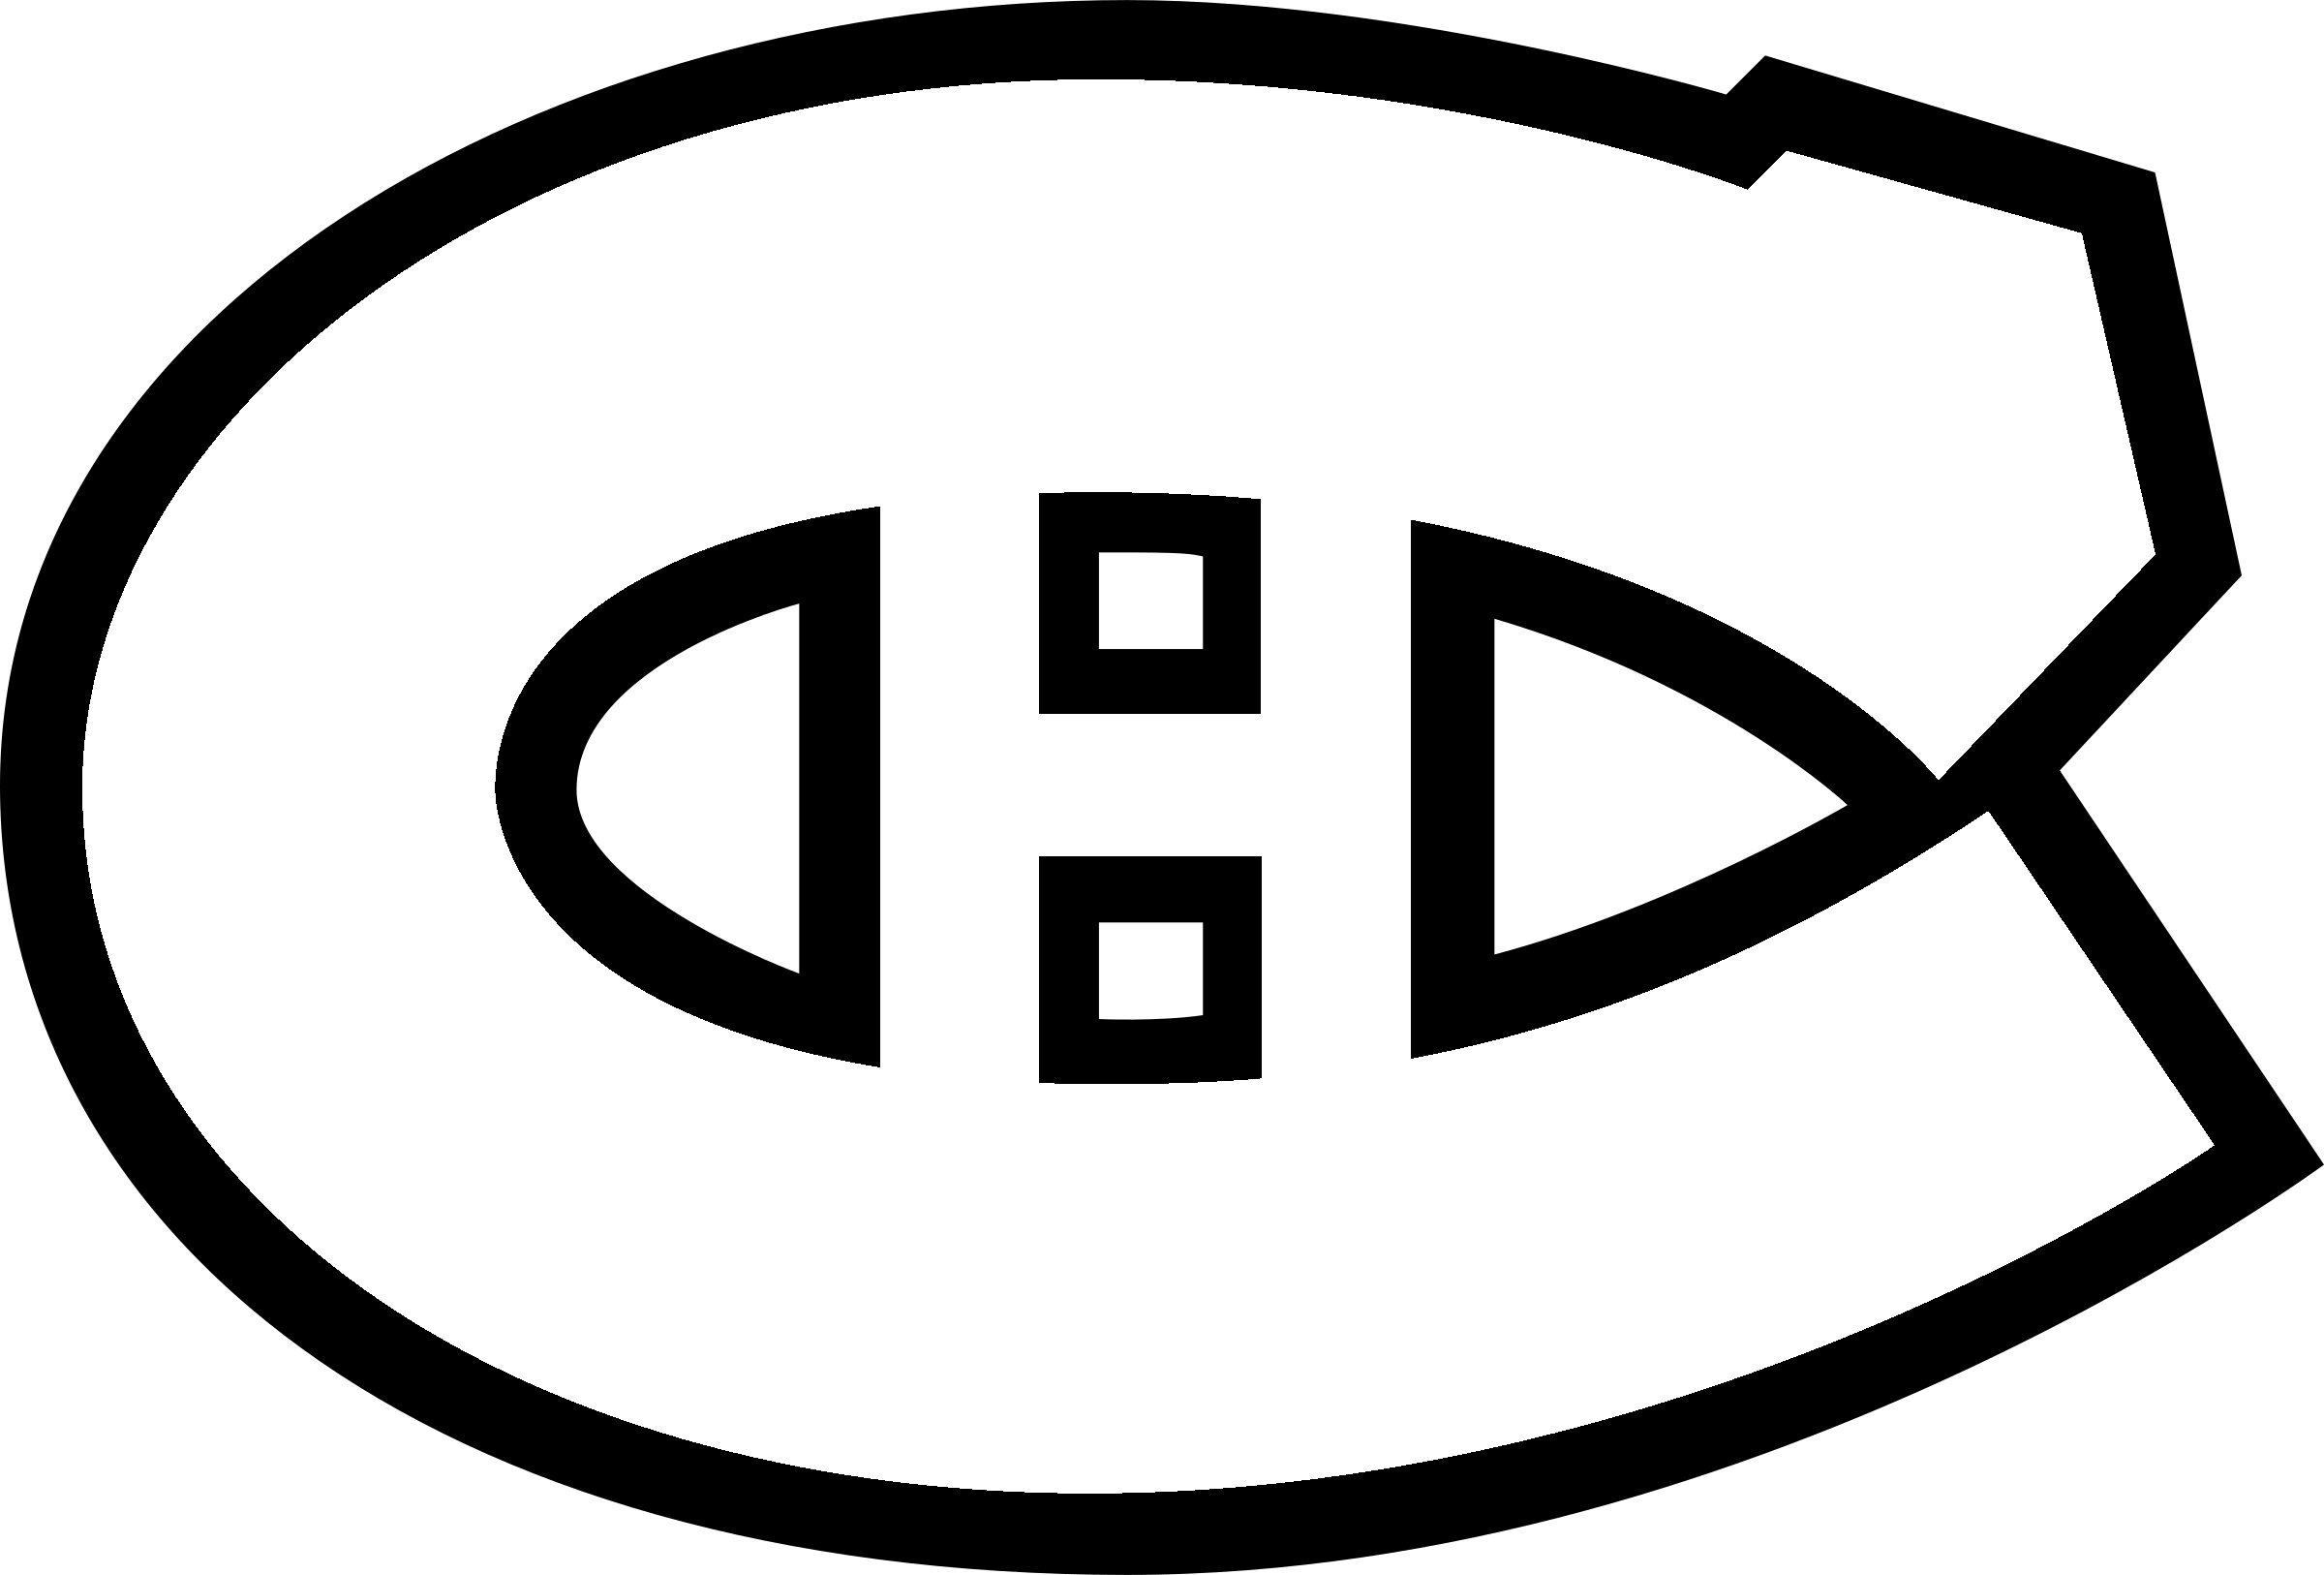 Montreal canadiens logo images